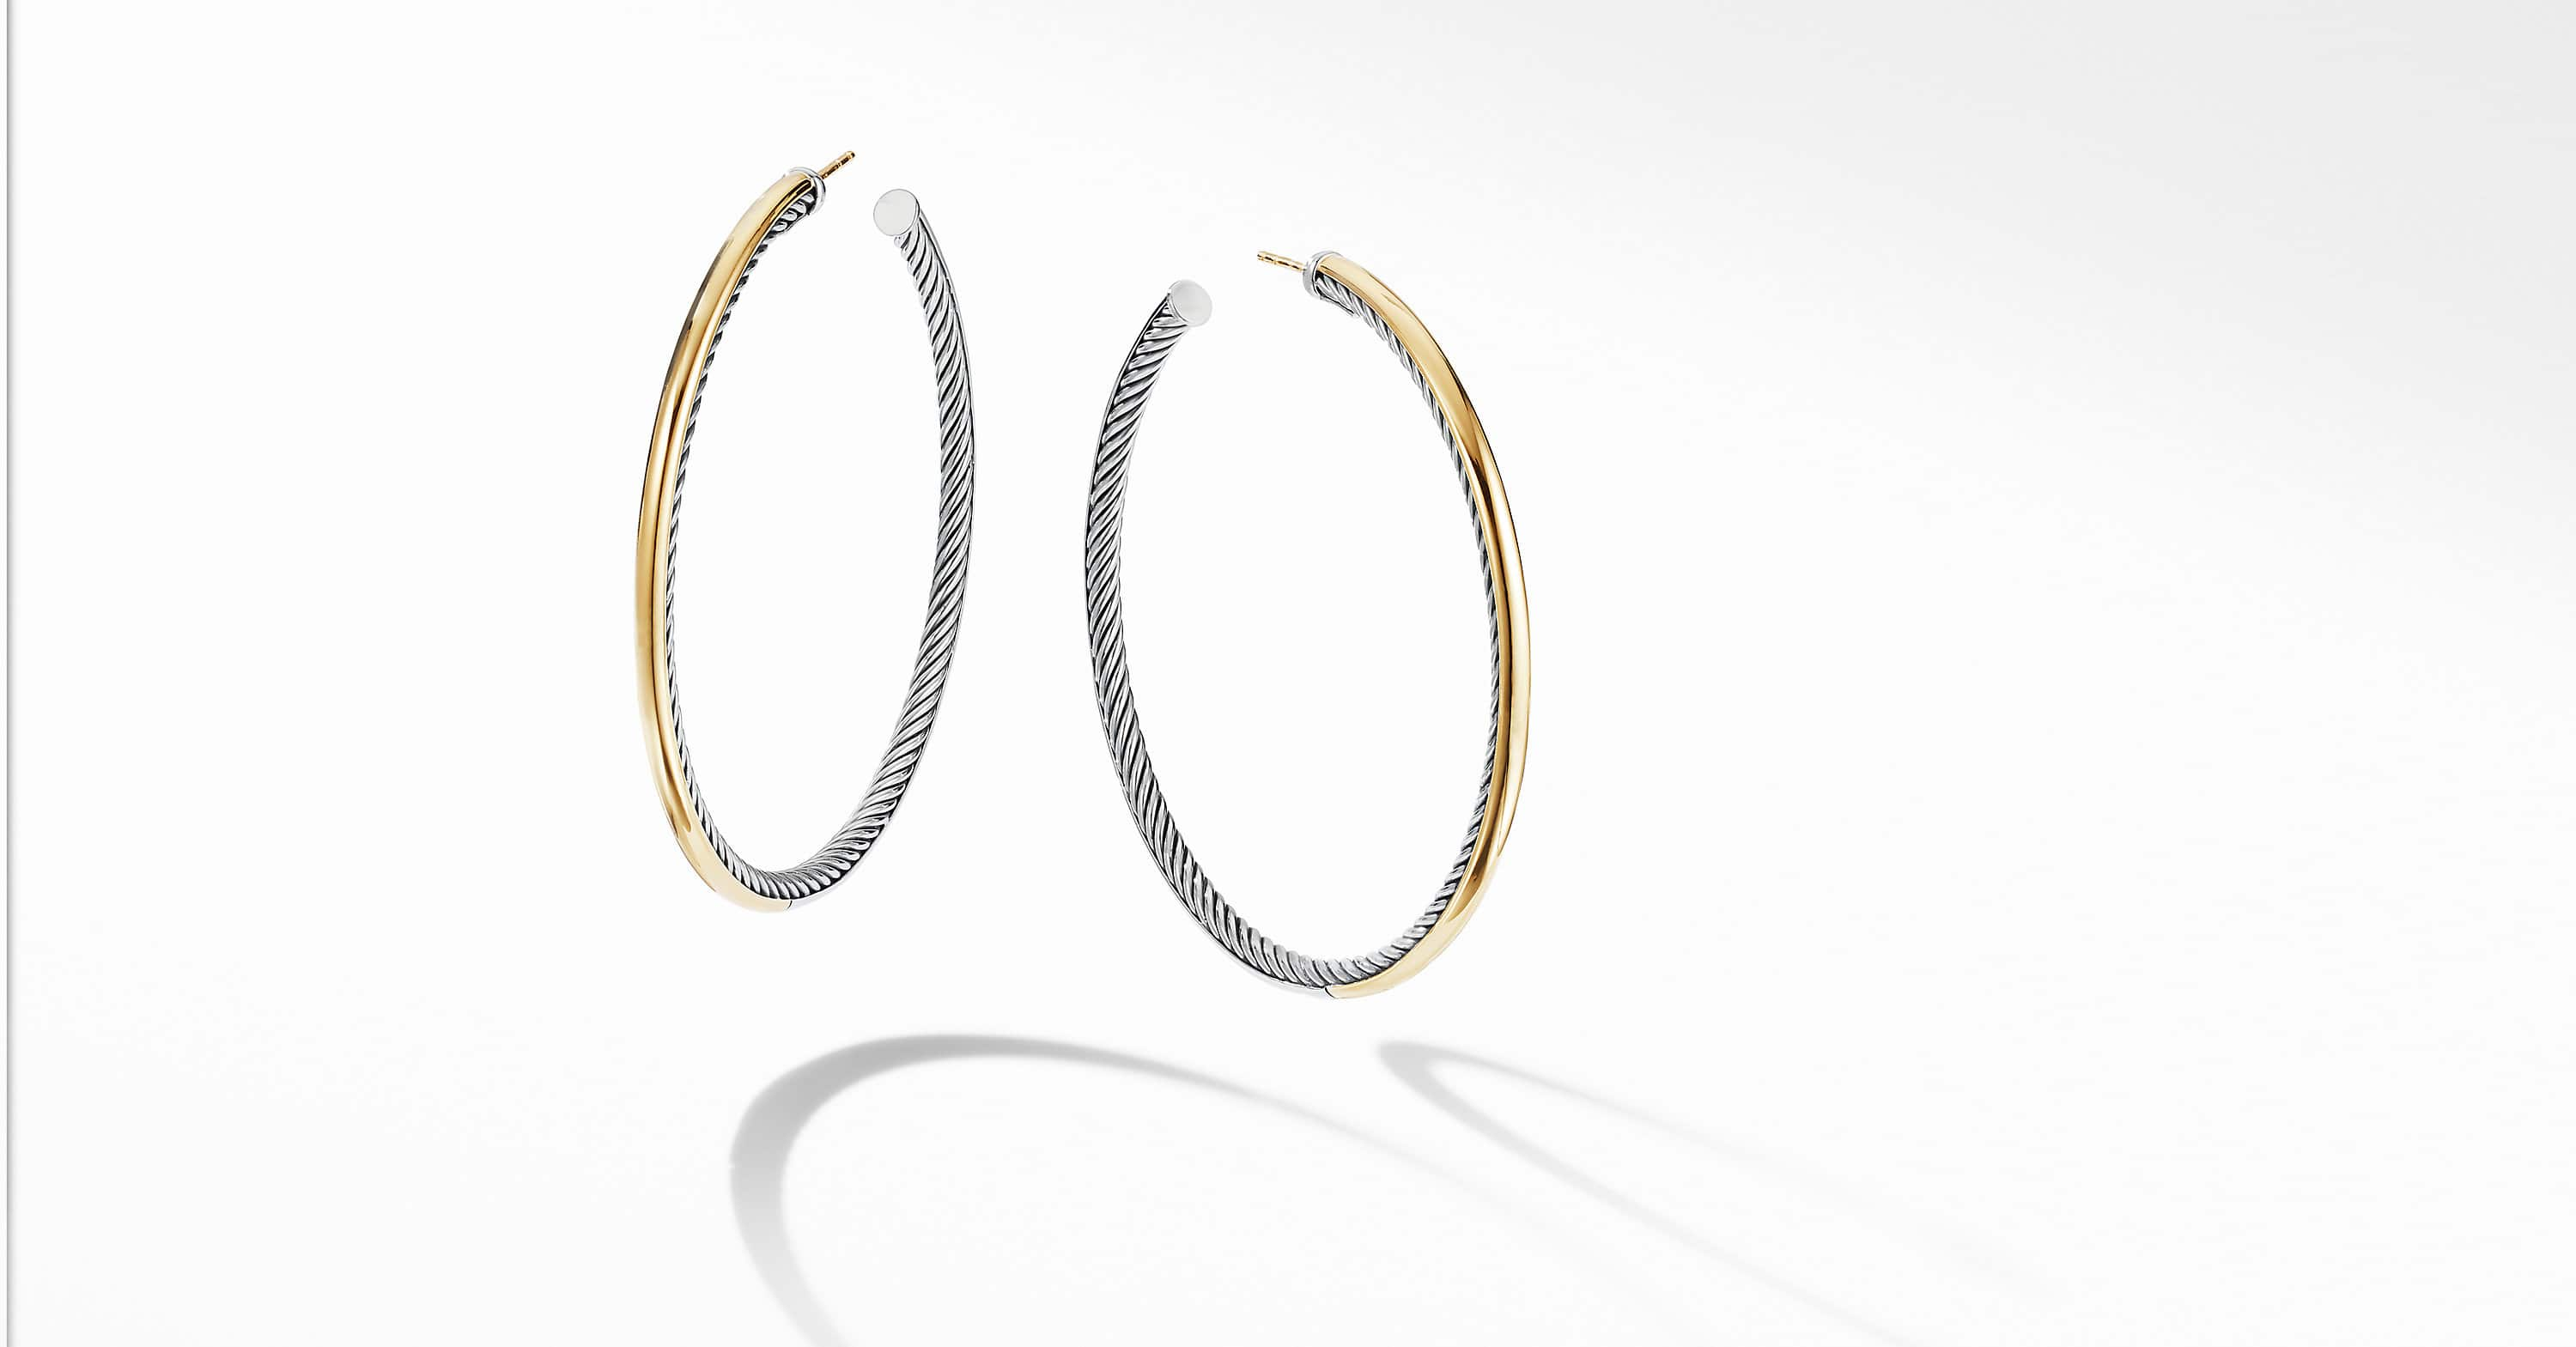 Sculpted Cable Hoop Earrings with 18K Yellow Gold, 2.5""